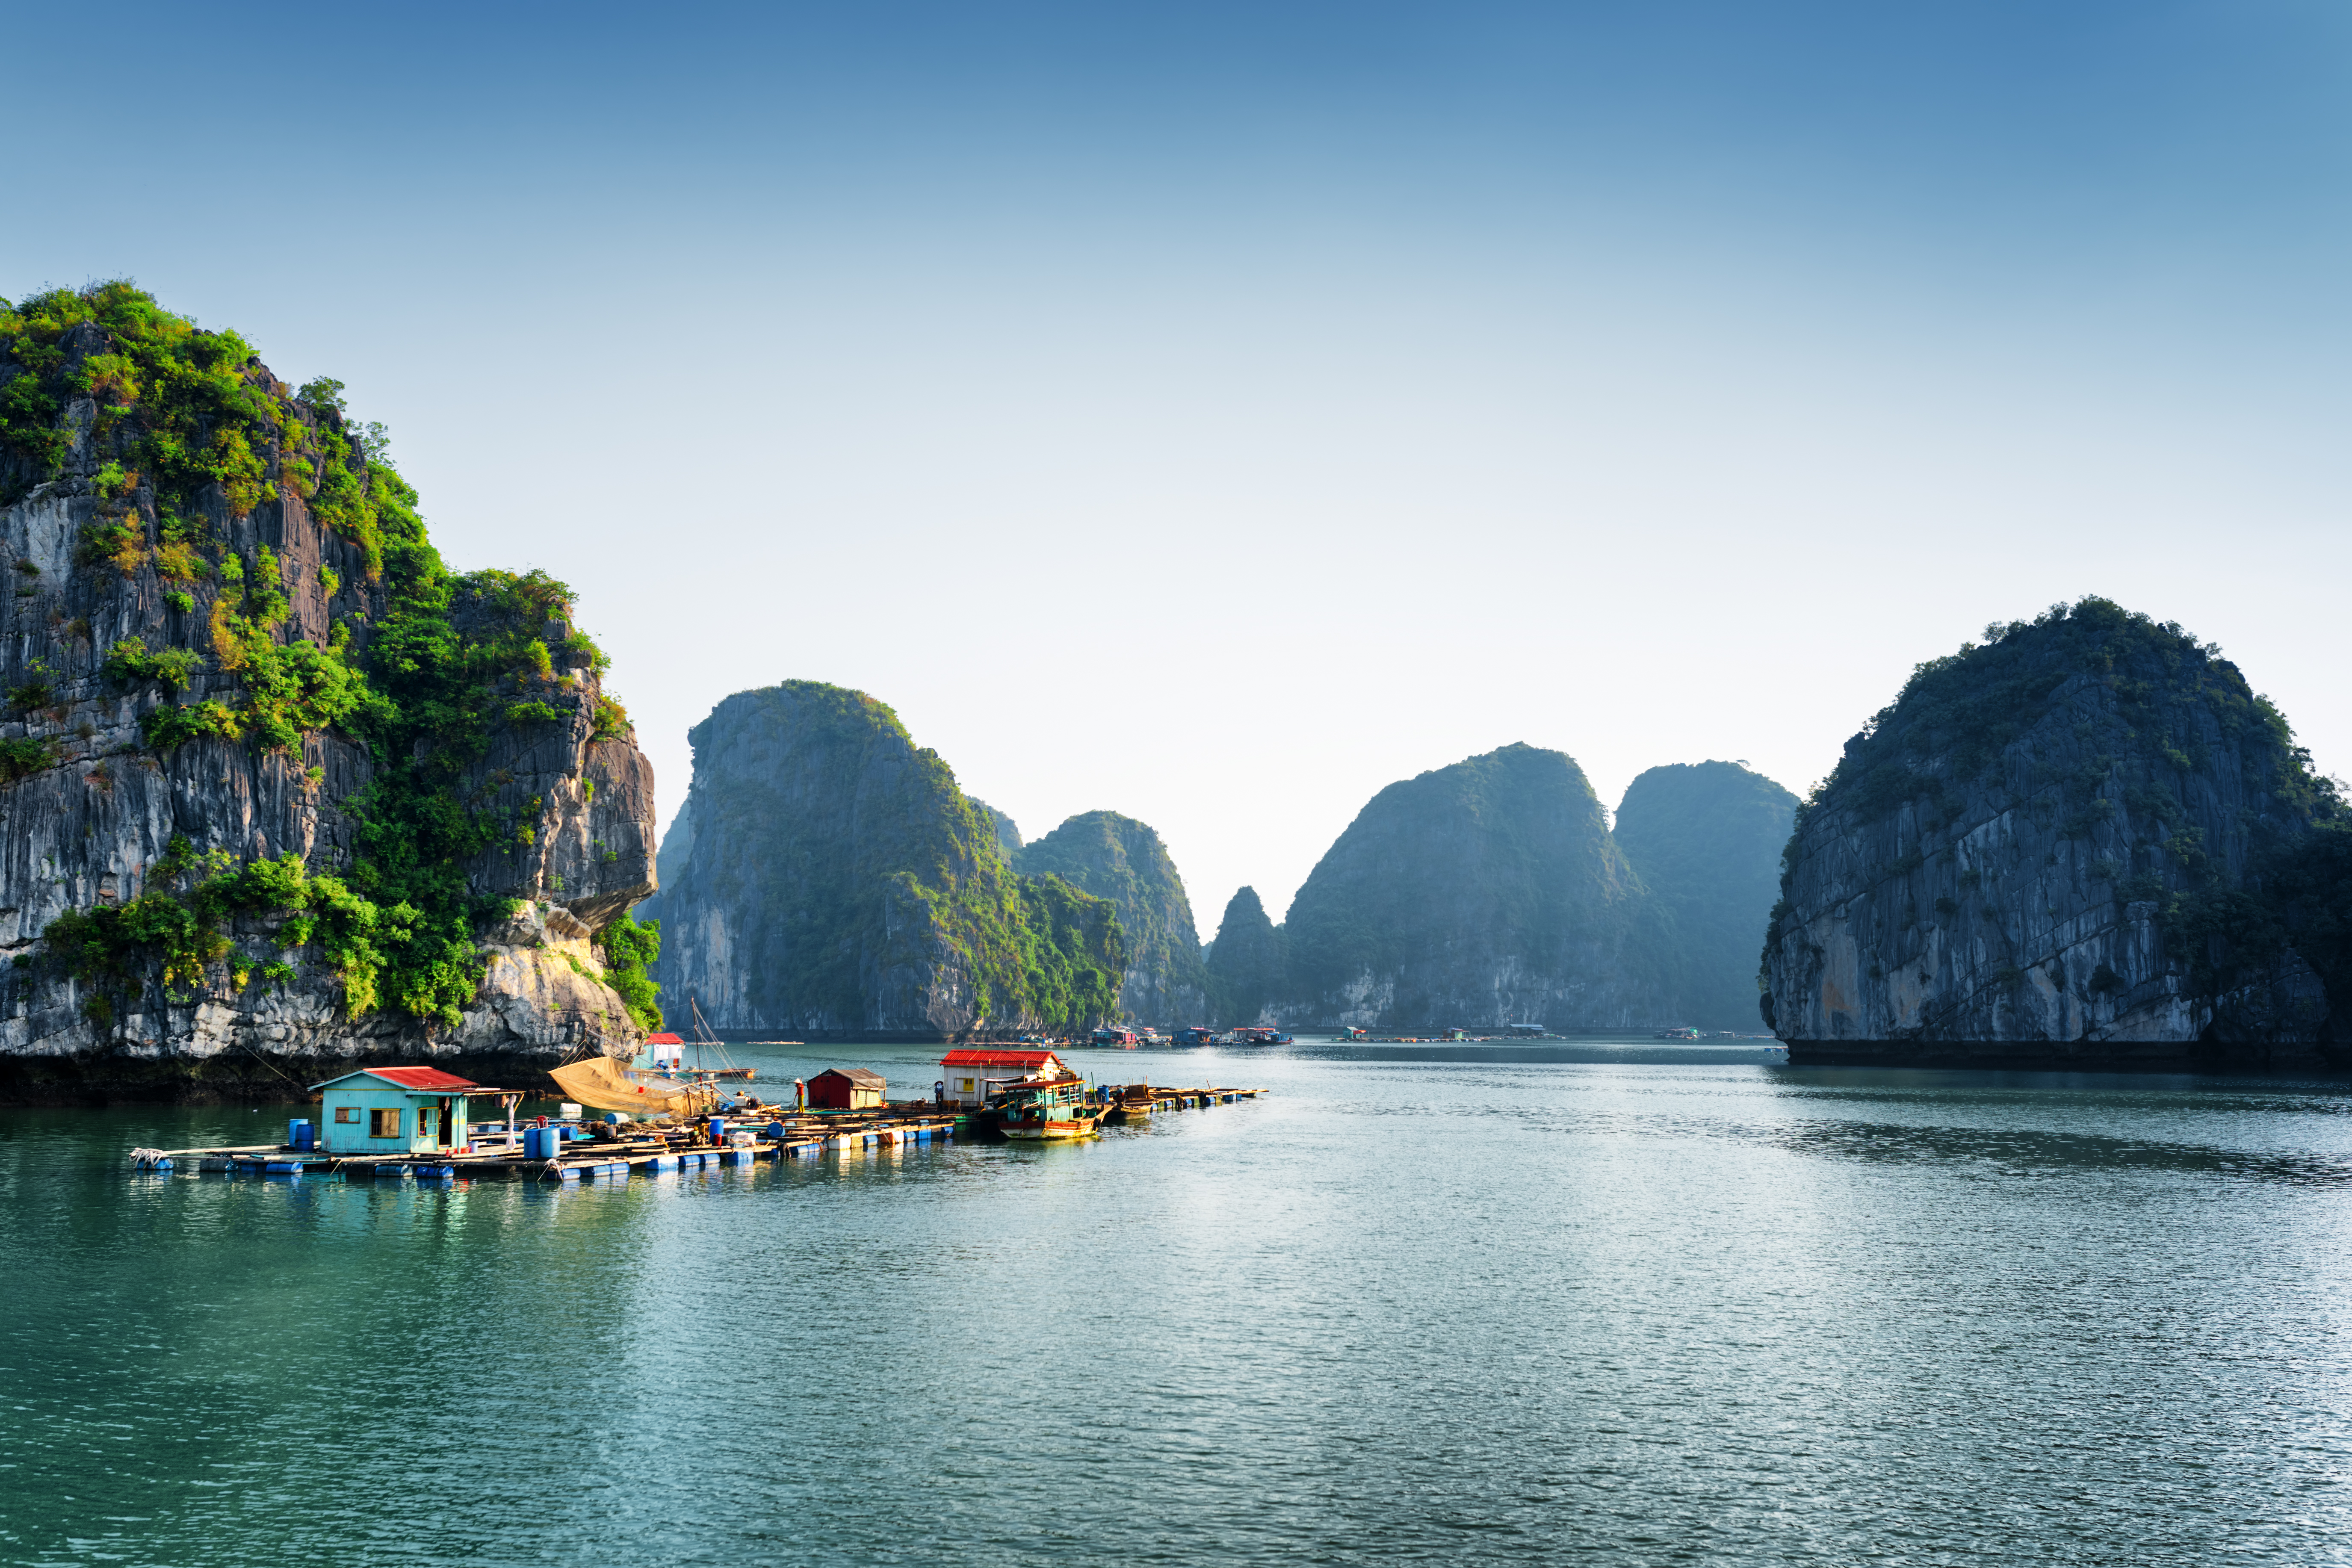 A view of floating fishing village in the Halong Bay